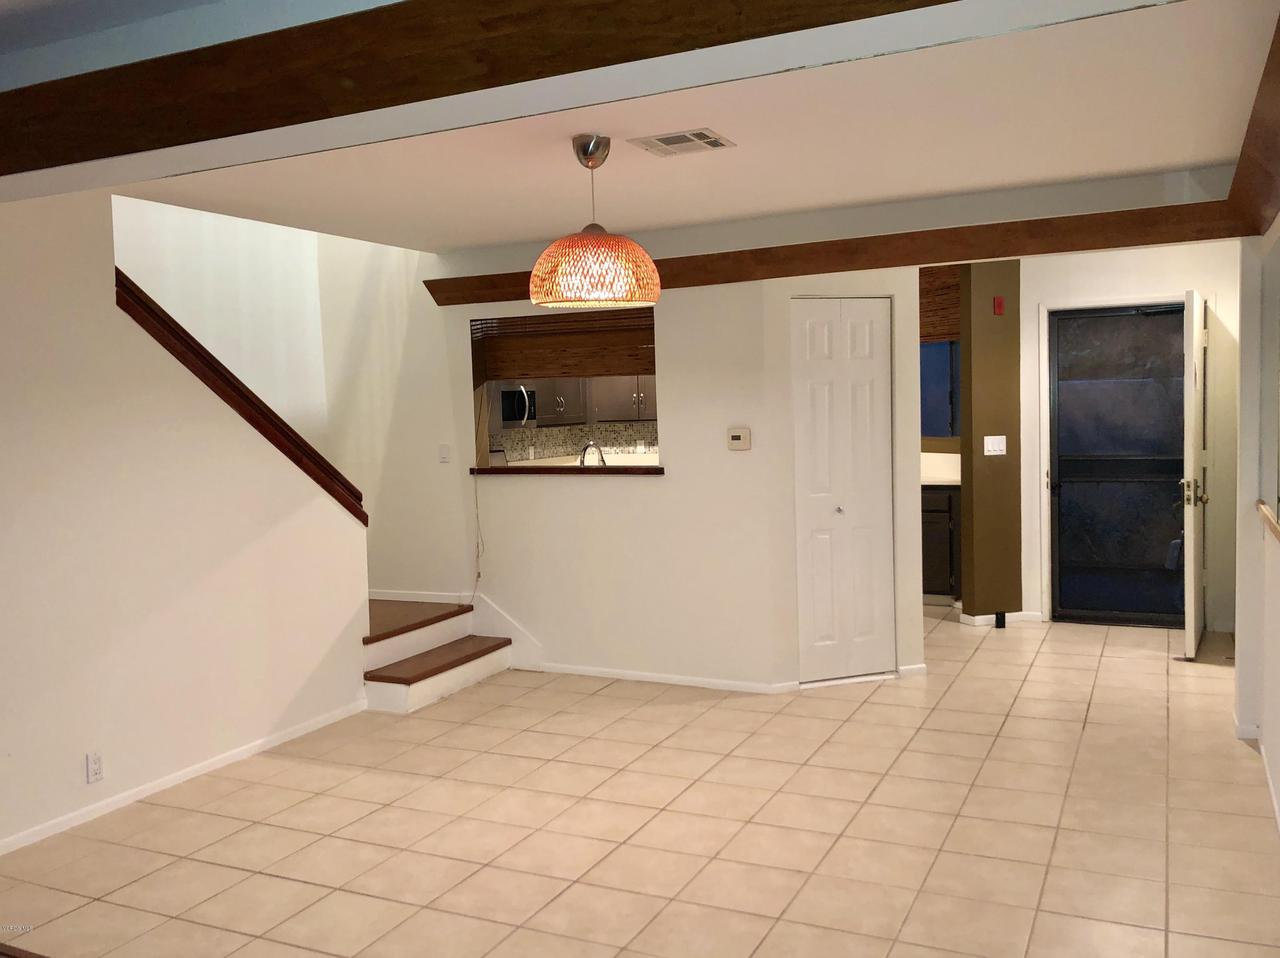 707 ISLAND VIEW, Port Hueneme, CA 93041 - ENTRANCE/DINING AREA